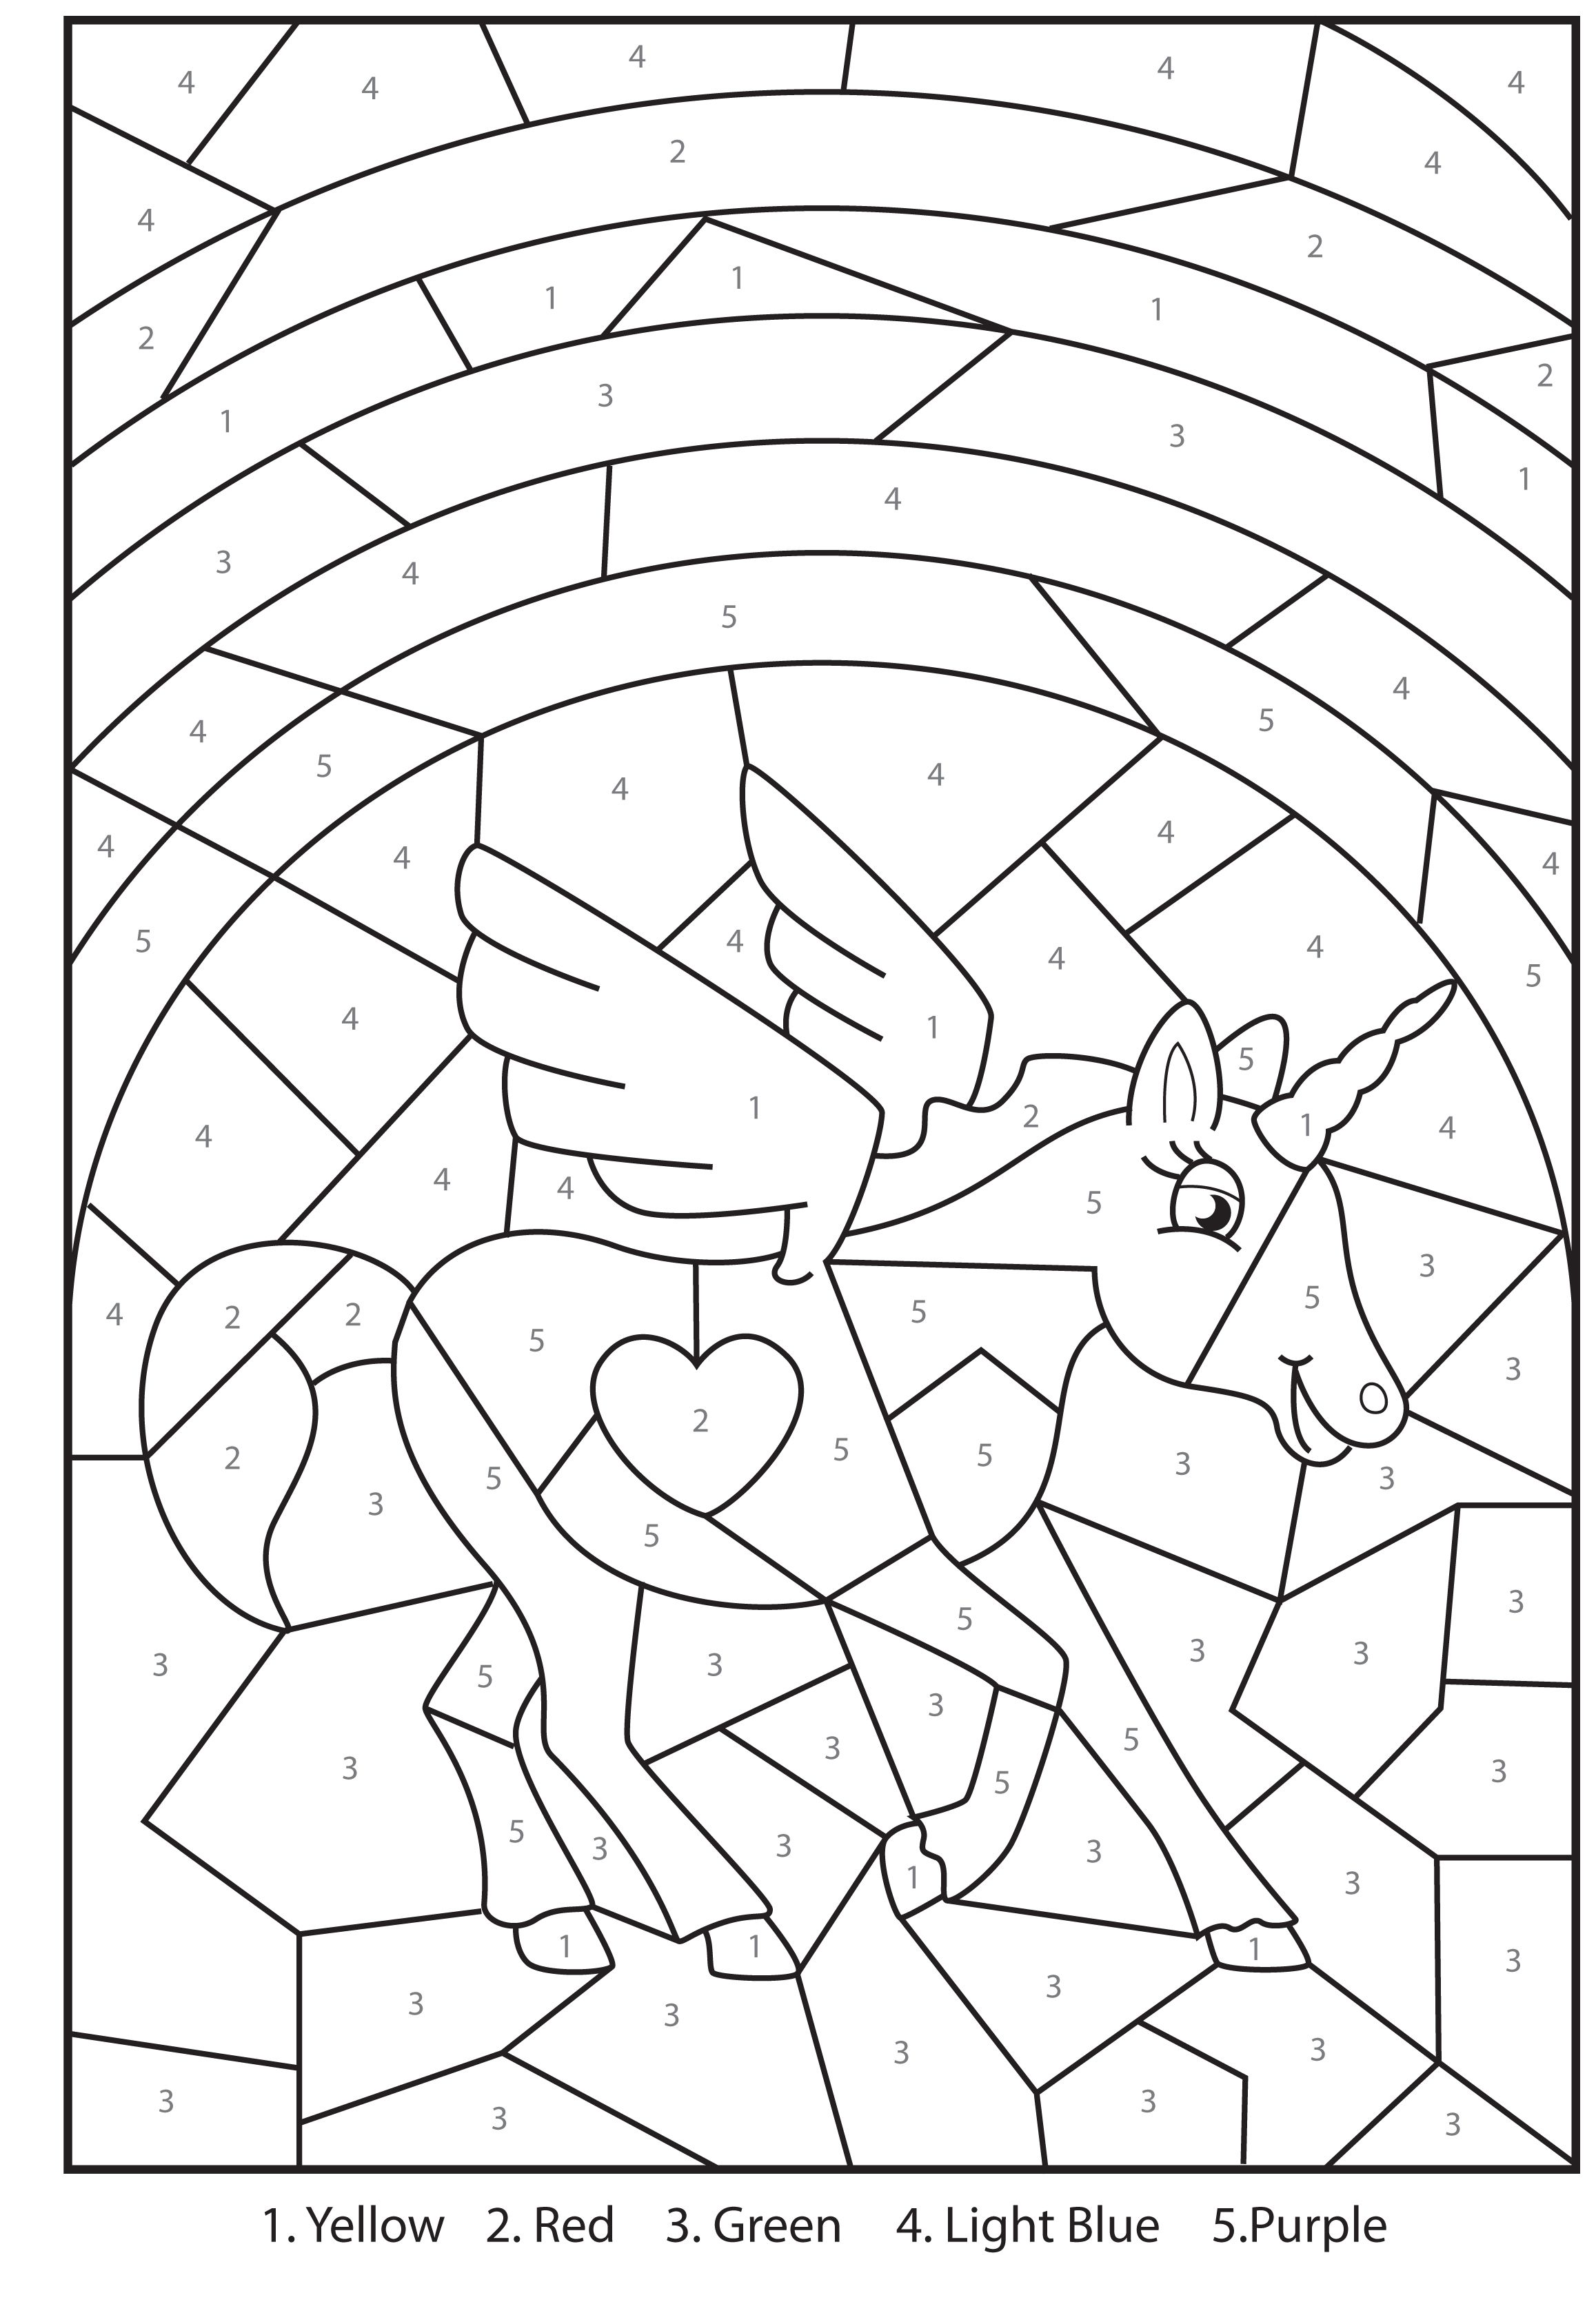 Free Printable Magical Unicorn Colour By Numbers Activity For Kids Coloring For Kids Kindergarten Activity Sheets Unicorn Coloring Pages